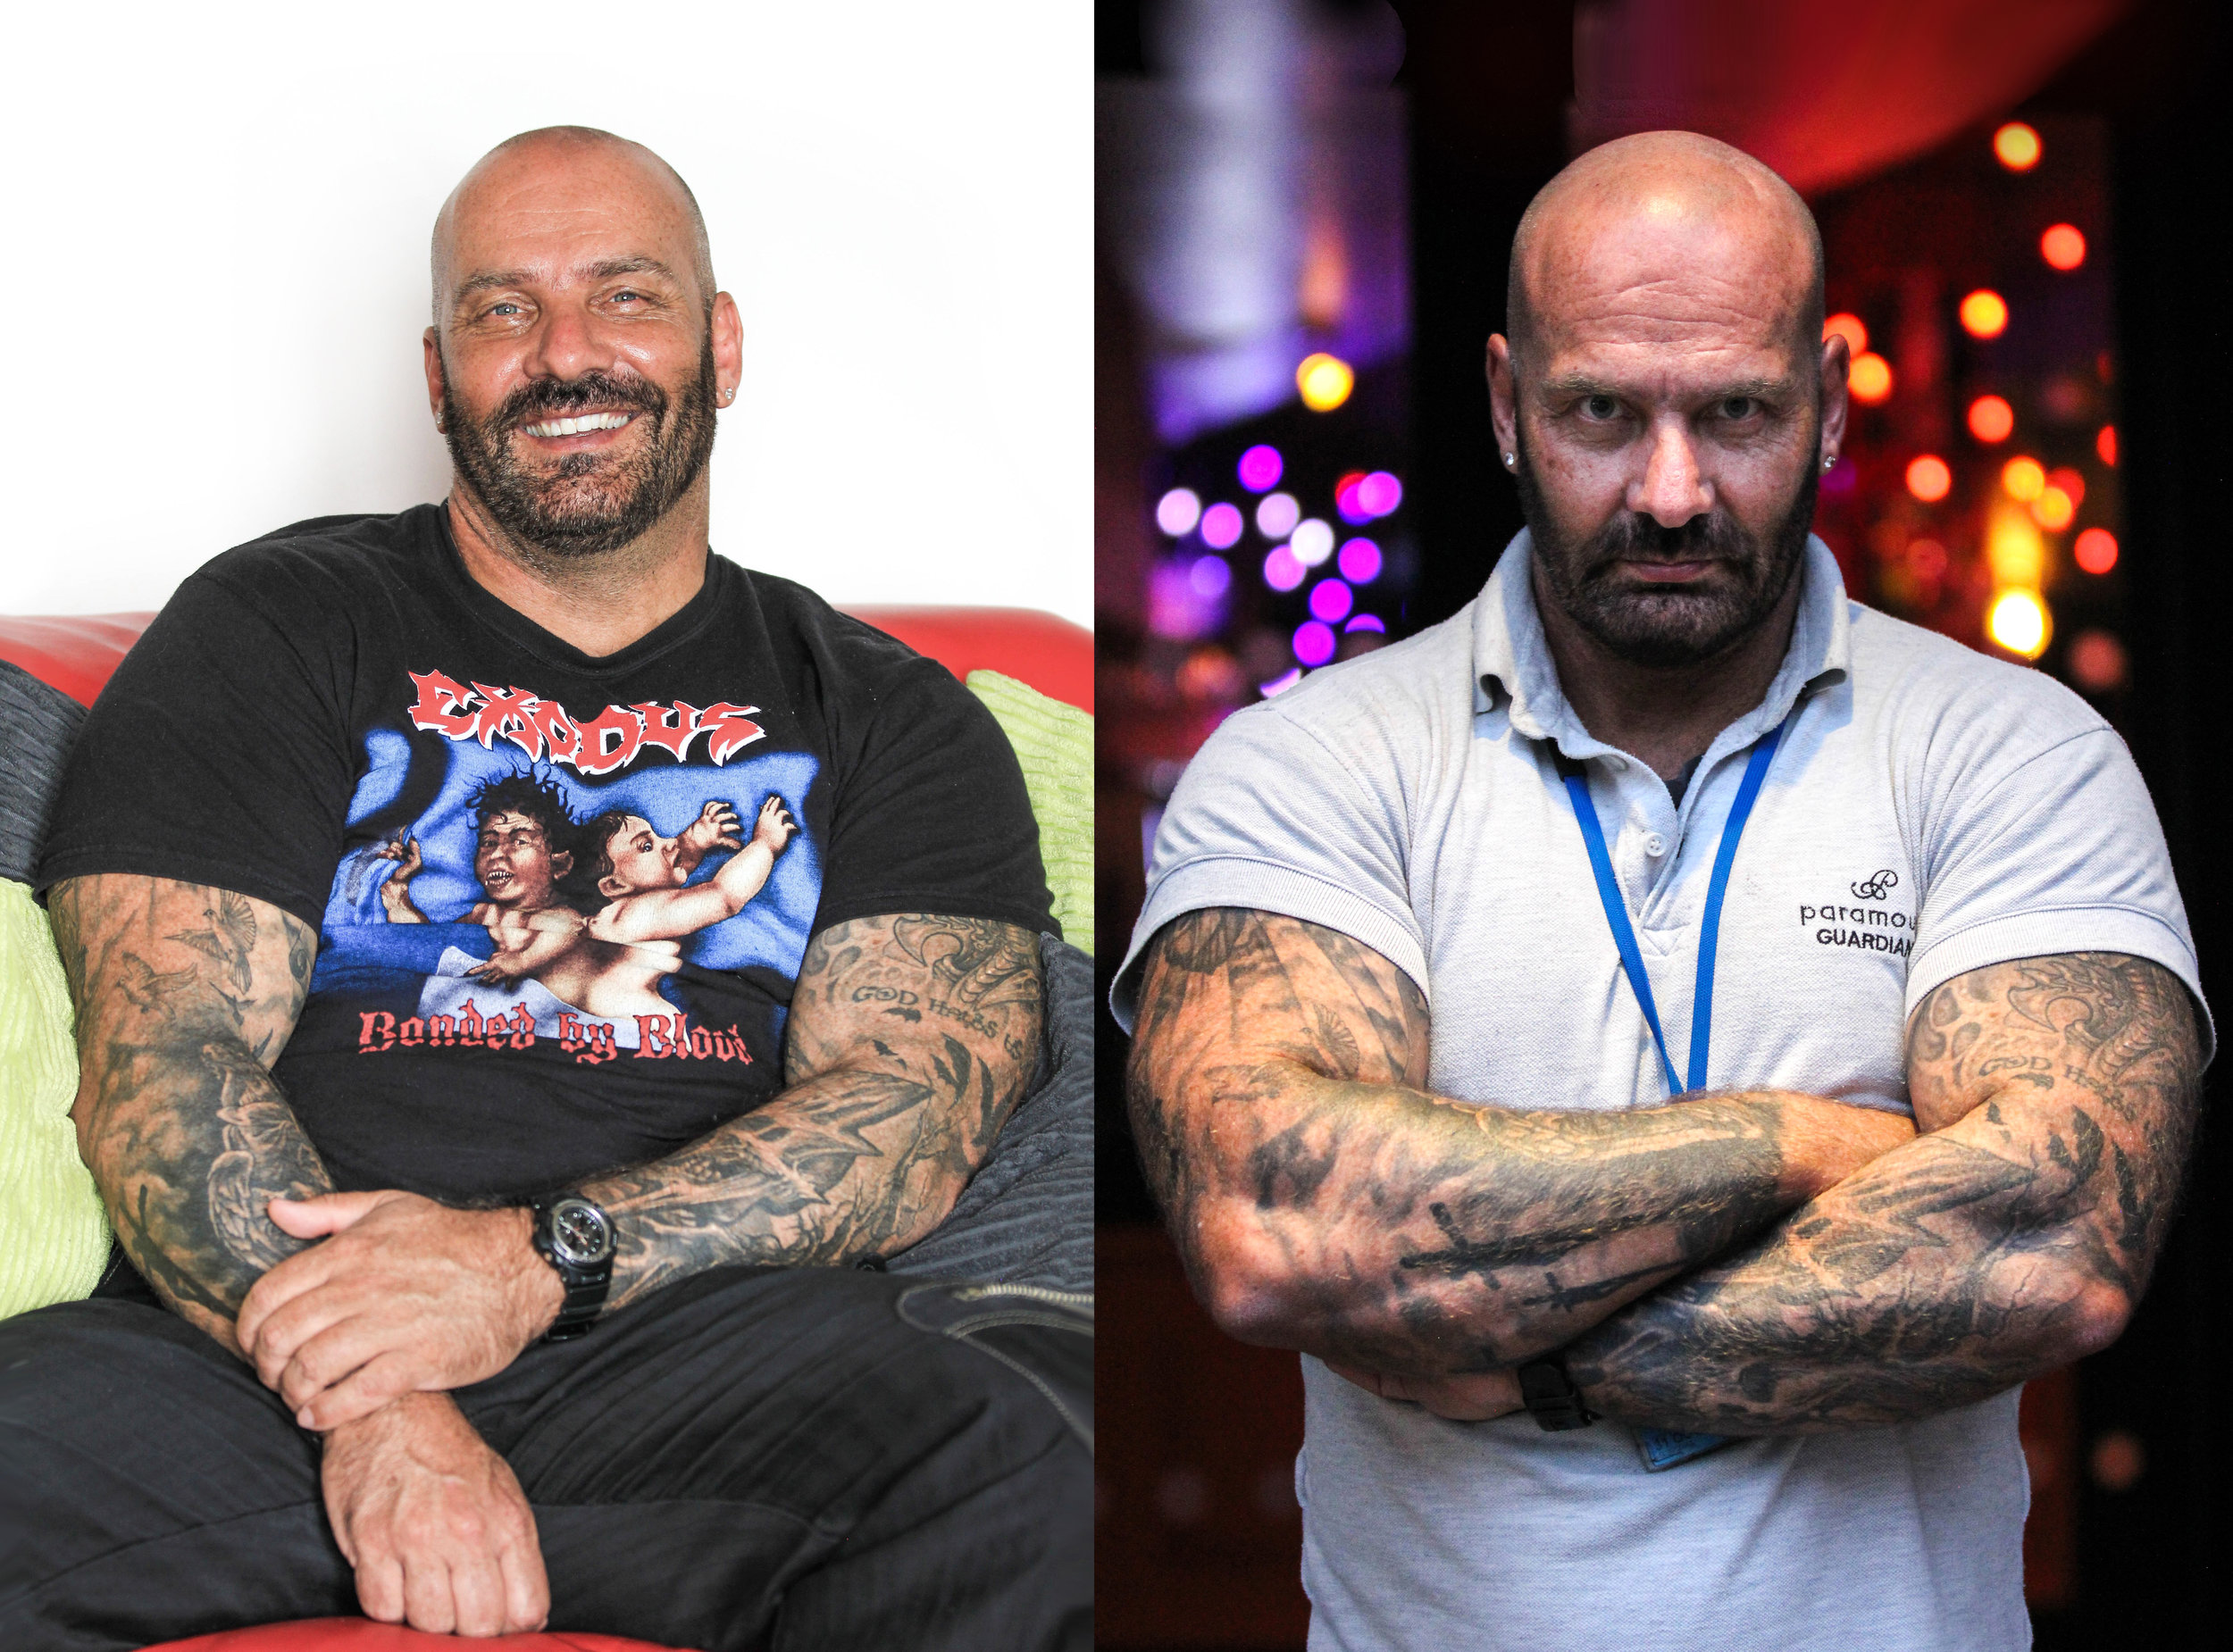 Gary McGill, I.T. Analyst and Doorman of 20 years. Loves the gym and punk music. He is negatively judged because he looks like his job, a stereotypical bouncer. He gets annoyed at those who assume his intimidating appearance portrays a matching personality. Gary wants people to be aware that being a doorman he is there to protect and guard you, not to ruin your night.